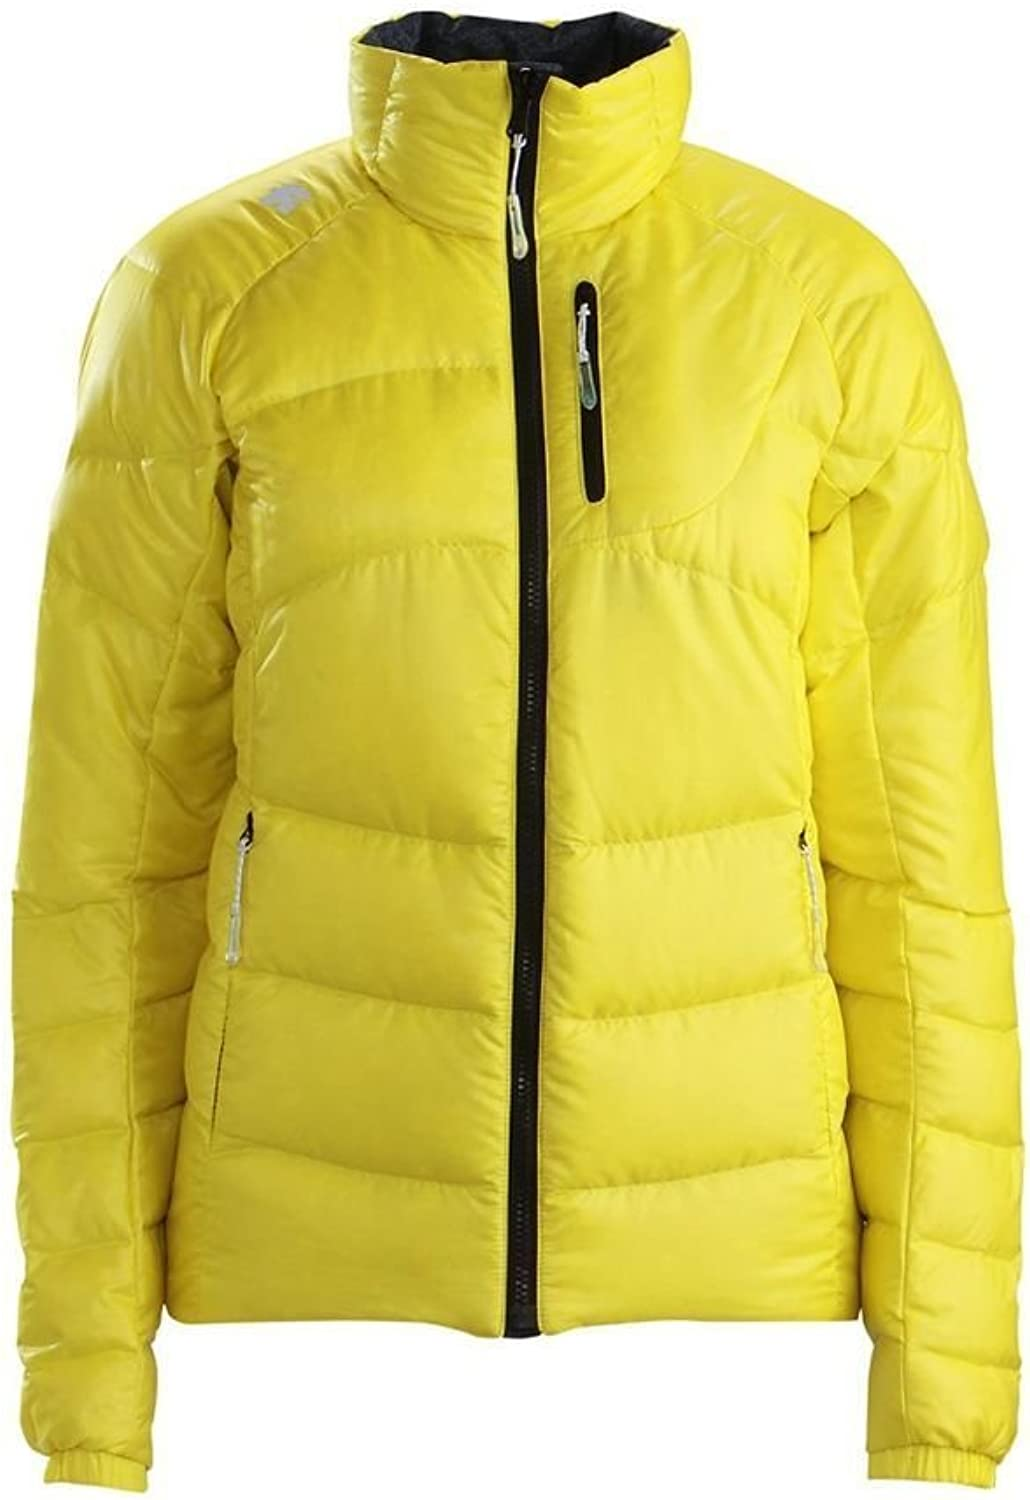 Descente Cadence Reversible Puffy Jacket, Bright Yellow, XSmall